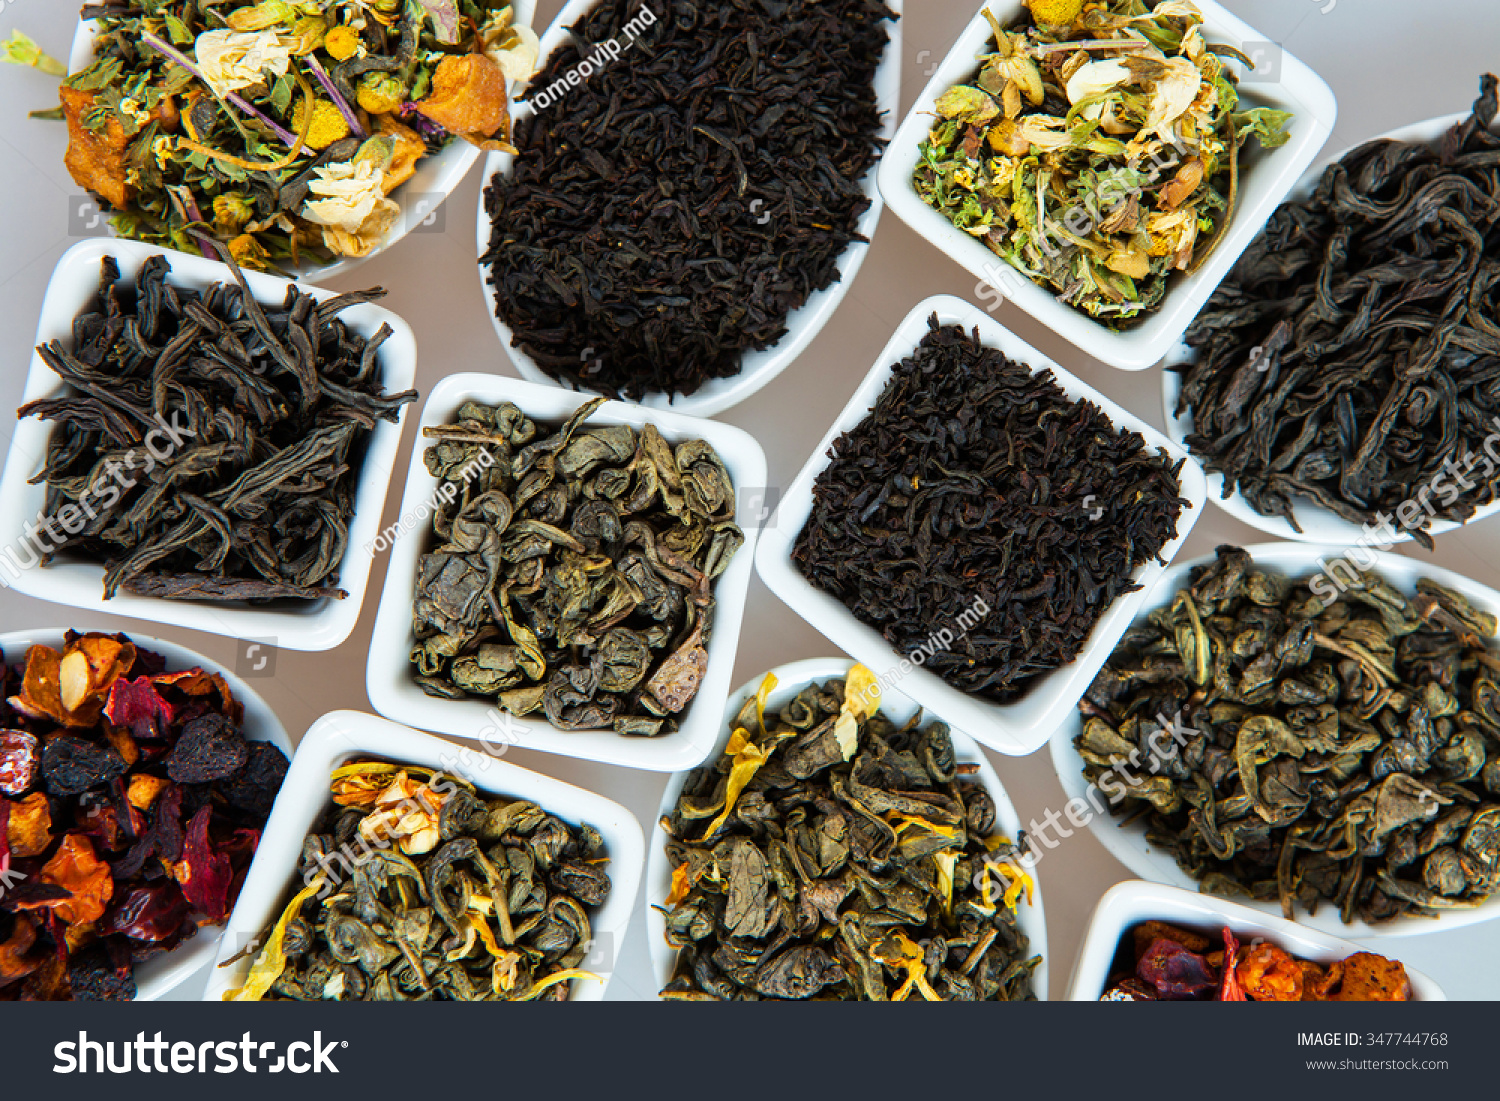 how to clean tea leaves